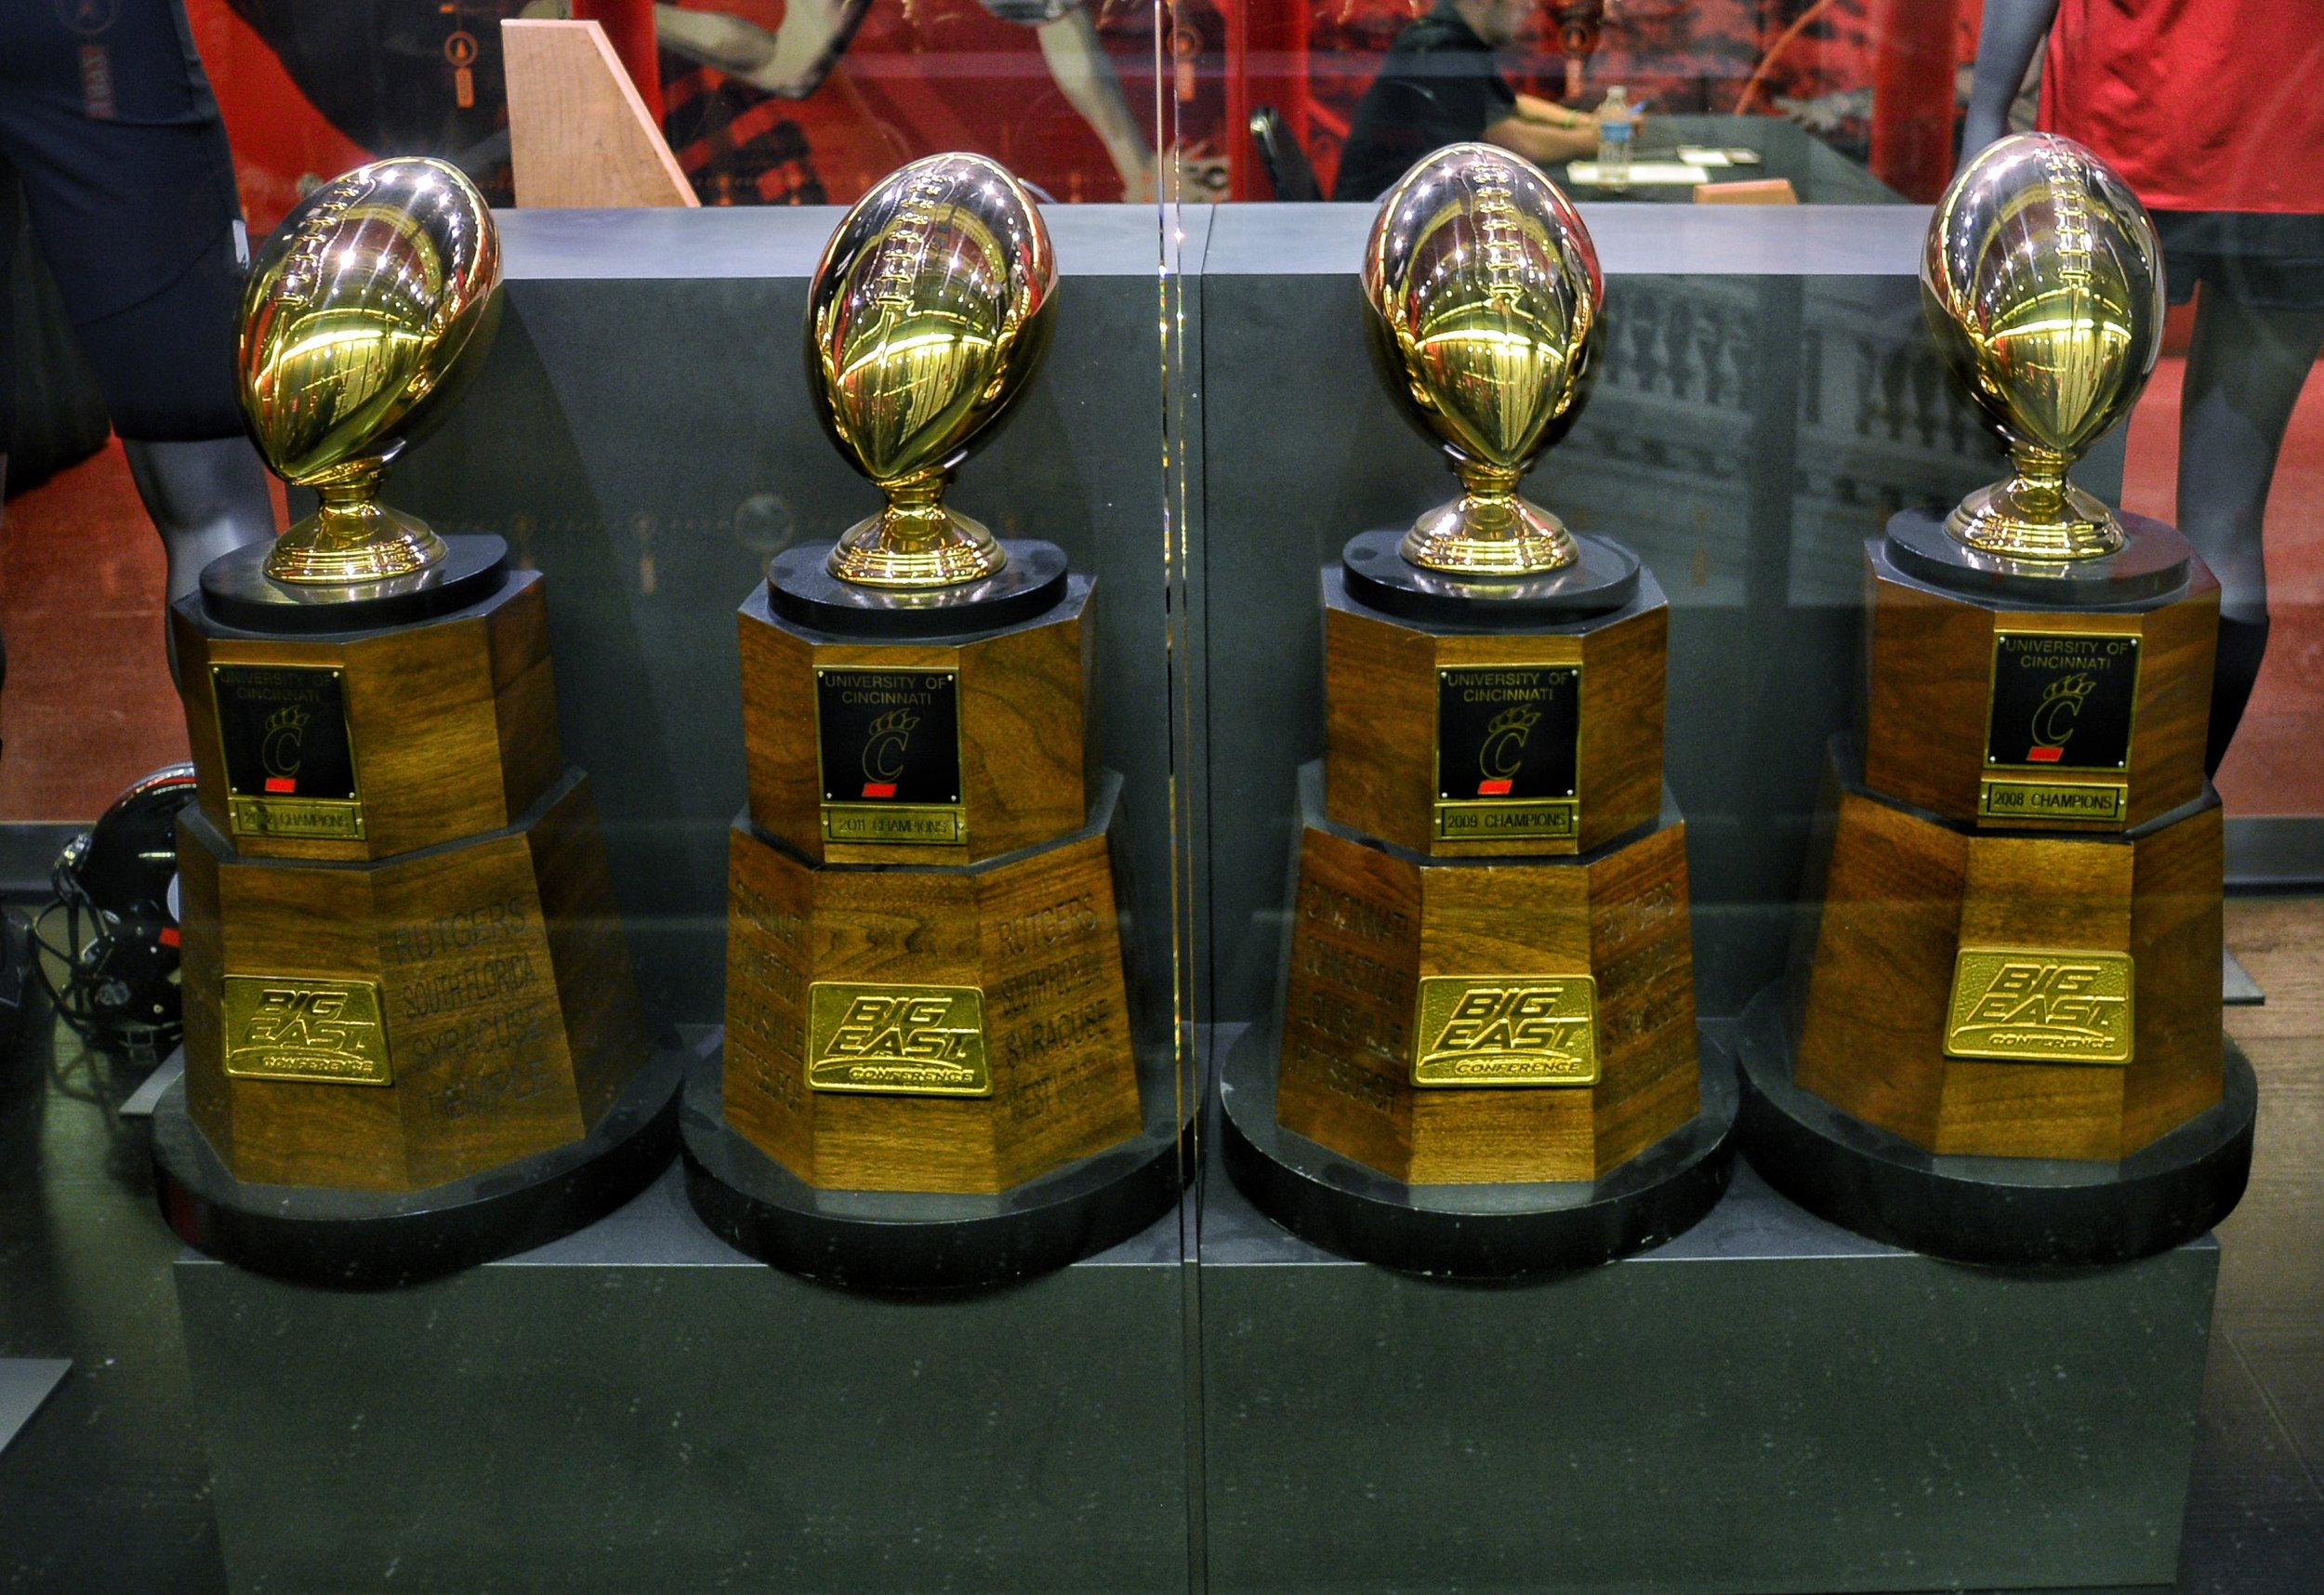 The Bearcats have won 4 Big East Conference titles finishing first in 2008, 2009, 2010 & 2011